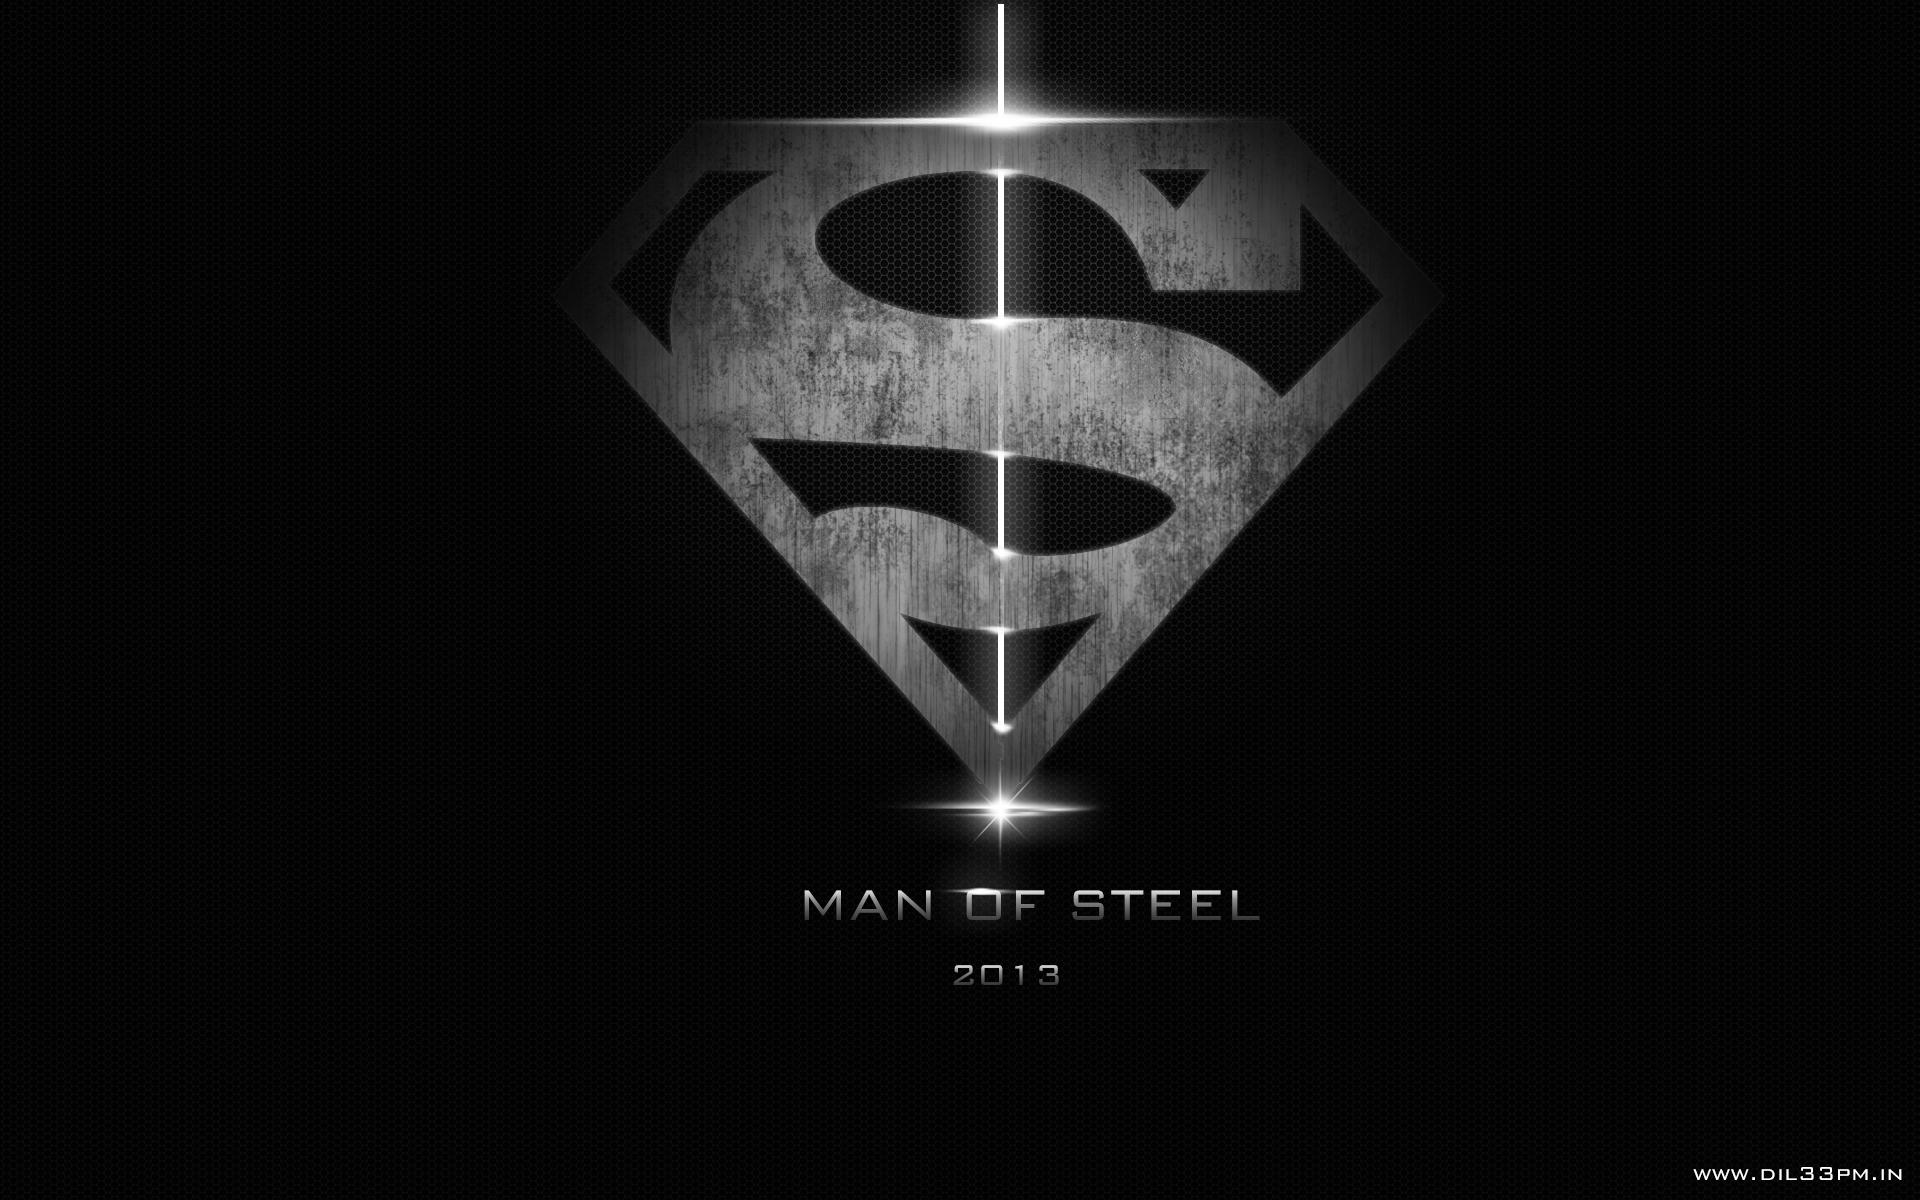 Man of steel desktop backgrounds wallpaper cave man of steel logo background wallpaper free hd 3d desktop wallpapers download voltagebd Gallery